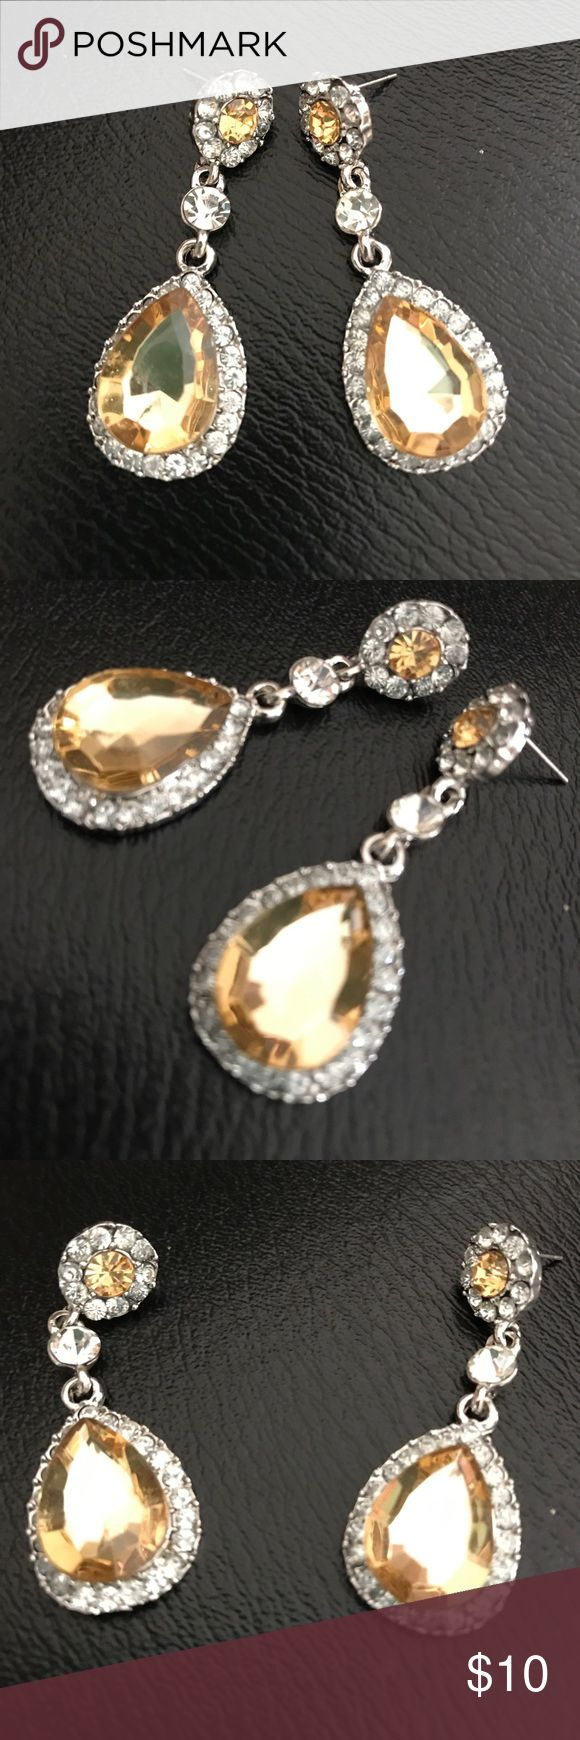 Beautiful new amber rhinestone teardrop earrings🔥 Beautiful new silver colored earrings with center teardrop amber colored stone as well as Amber center stone in top teardrop surrounded by rhinestones as well as top round portion of hearing beautiful on would look great with any outfit casual or formal Jewelry Earrings